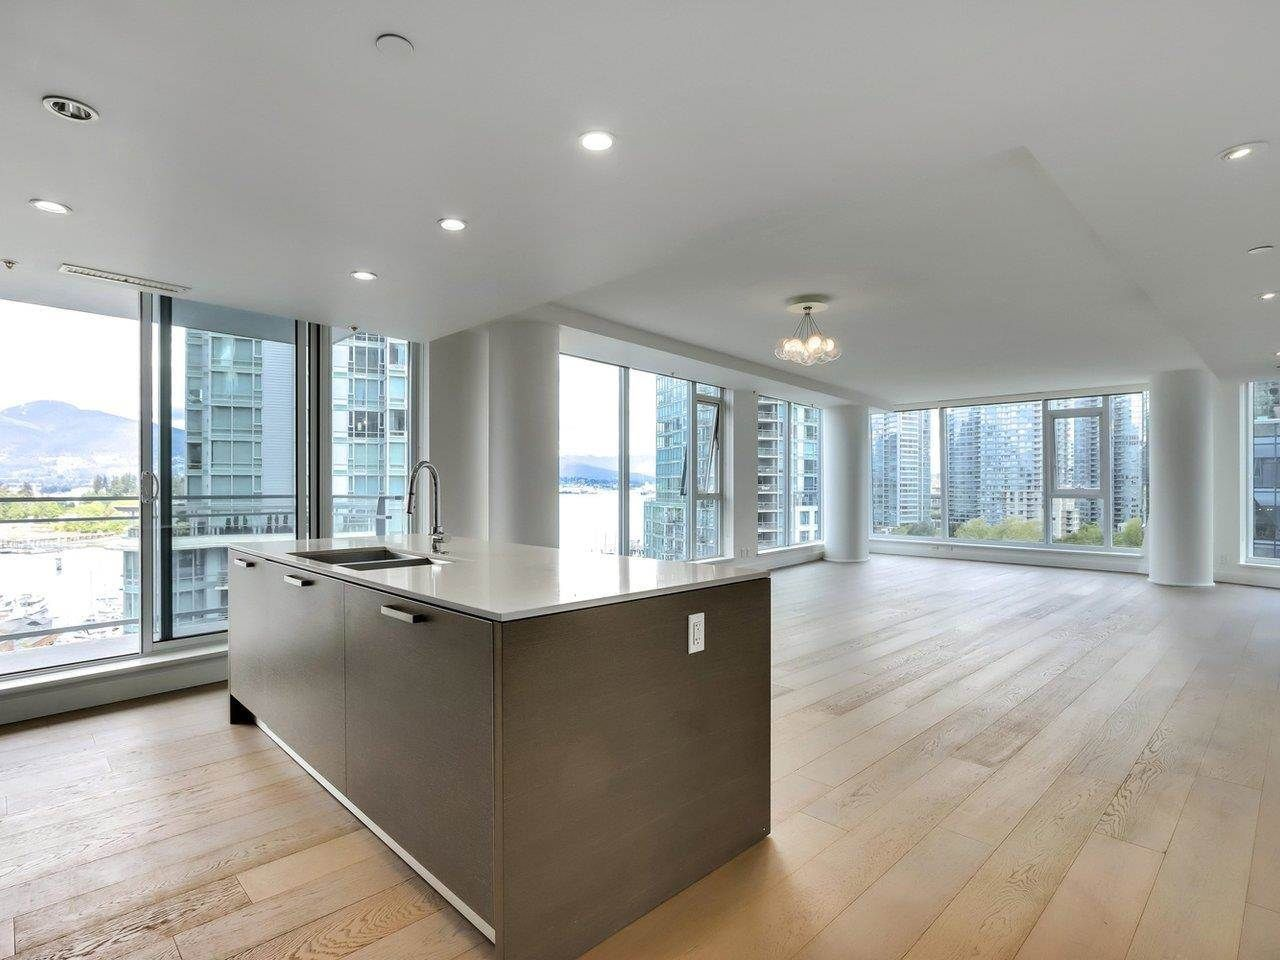 """Main Photo: 1002 1499 W PENDER Street in Vancouver: Coal Harbour Condo for sale in """"WEST PENDER PLACE"""" (Vancouver West)  : MLS®# R2583305"""